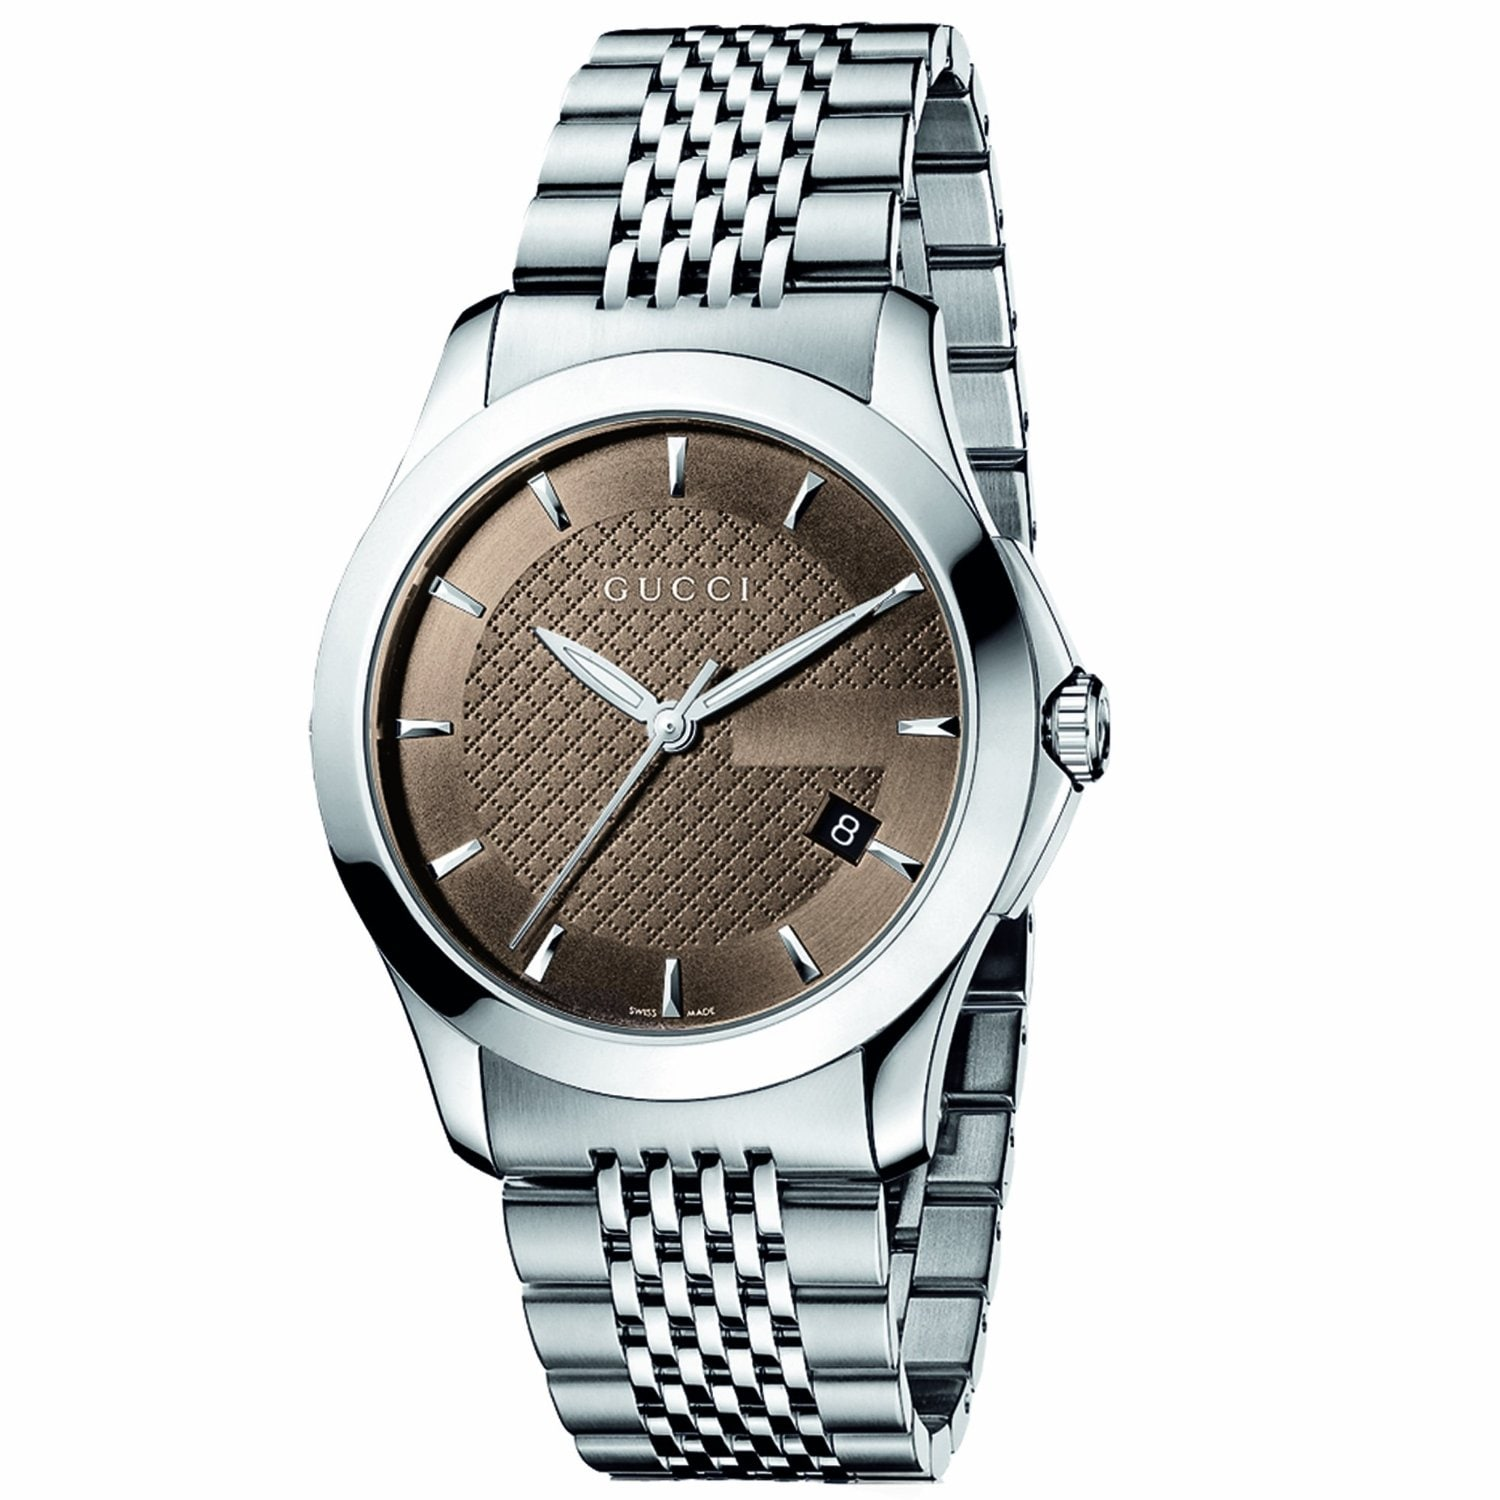 Gucci Timeless Ladies Watch Gucci G-timeless Watch